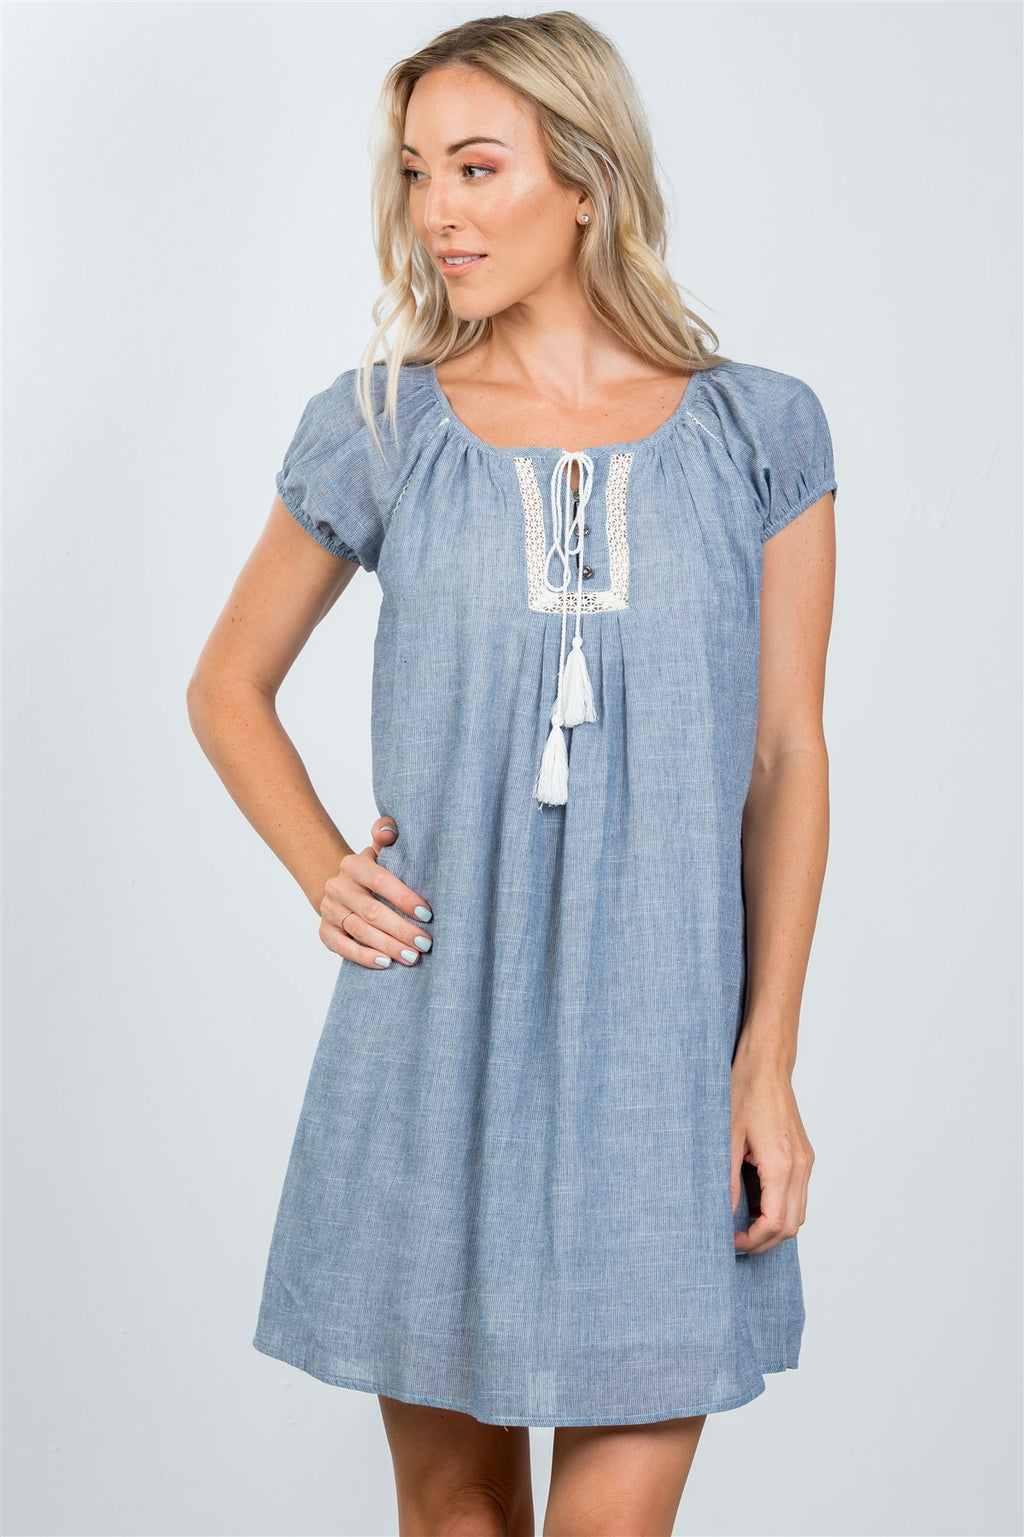 Ladies fashion tassel-tie boho shift dress